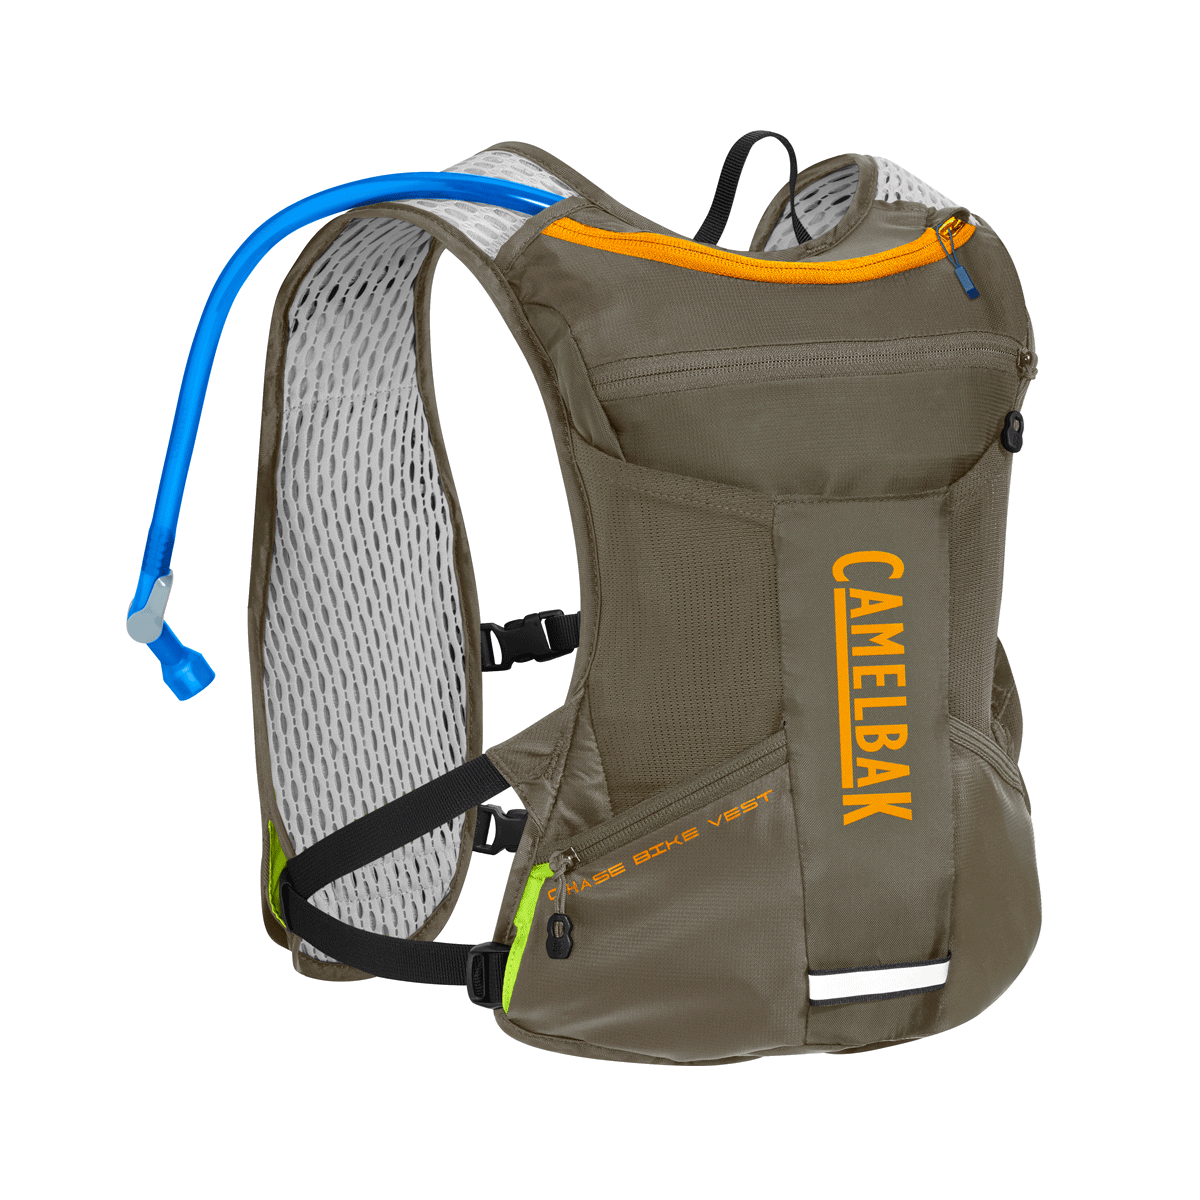 Camelbak Chase Bike Vest Hydration Pack - 2019